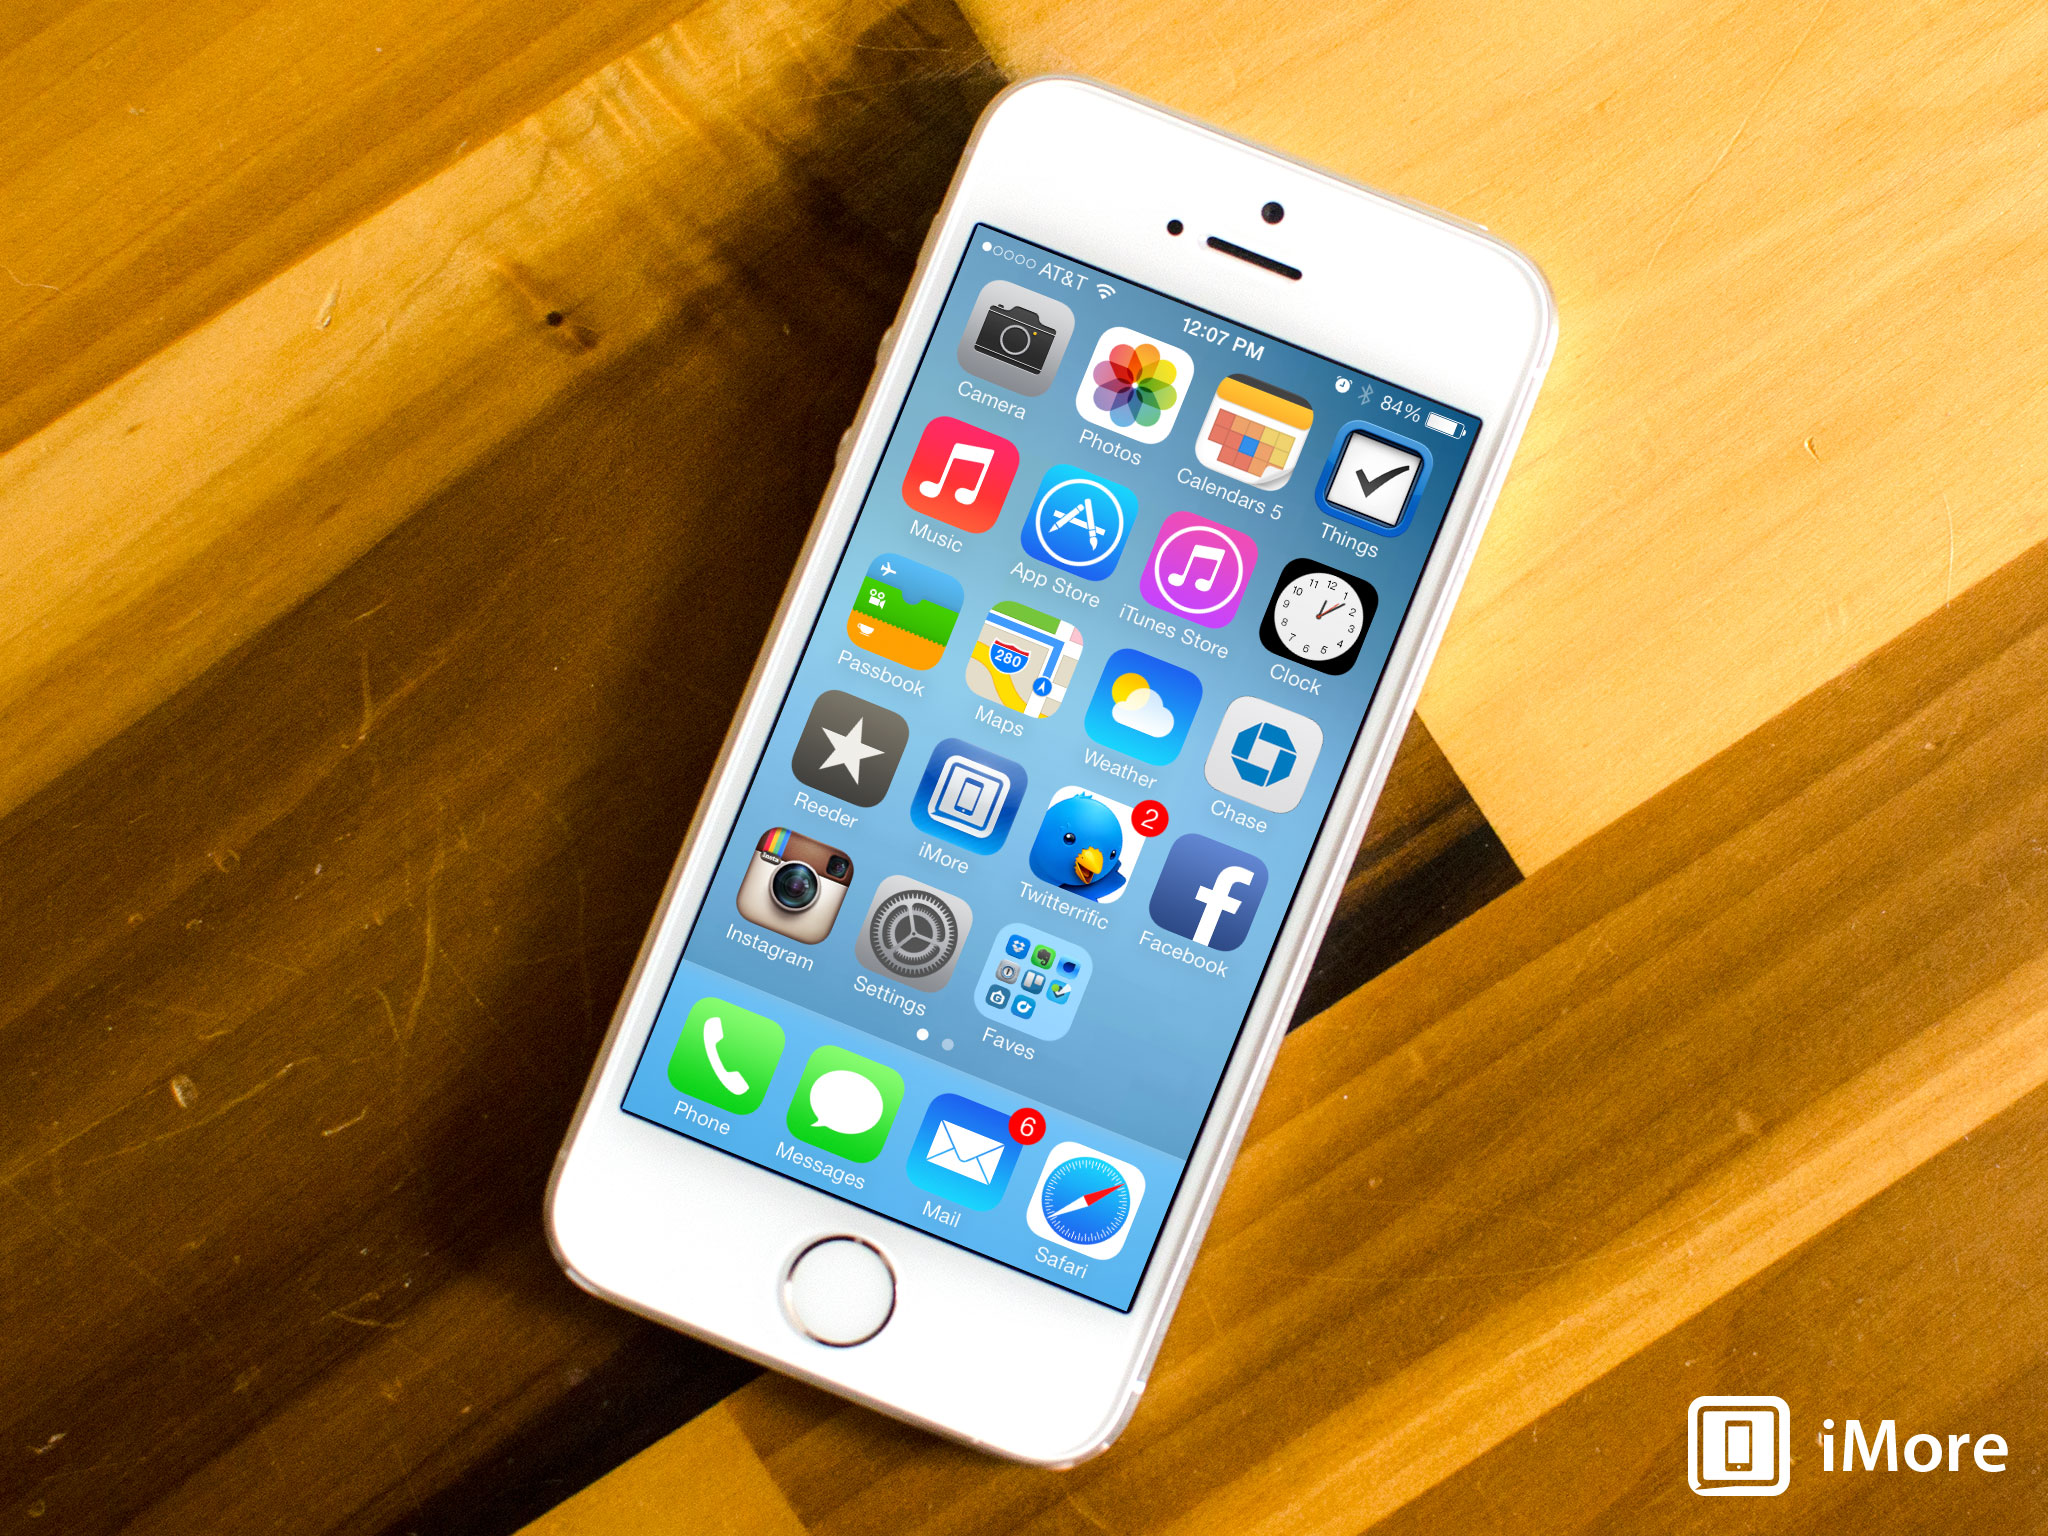 Flash Wallpaper Hd Iphone Silver Iphone 5s Photo Gallery Imore